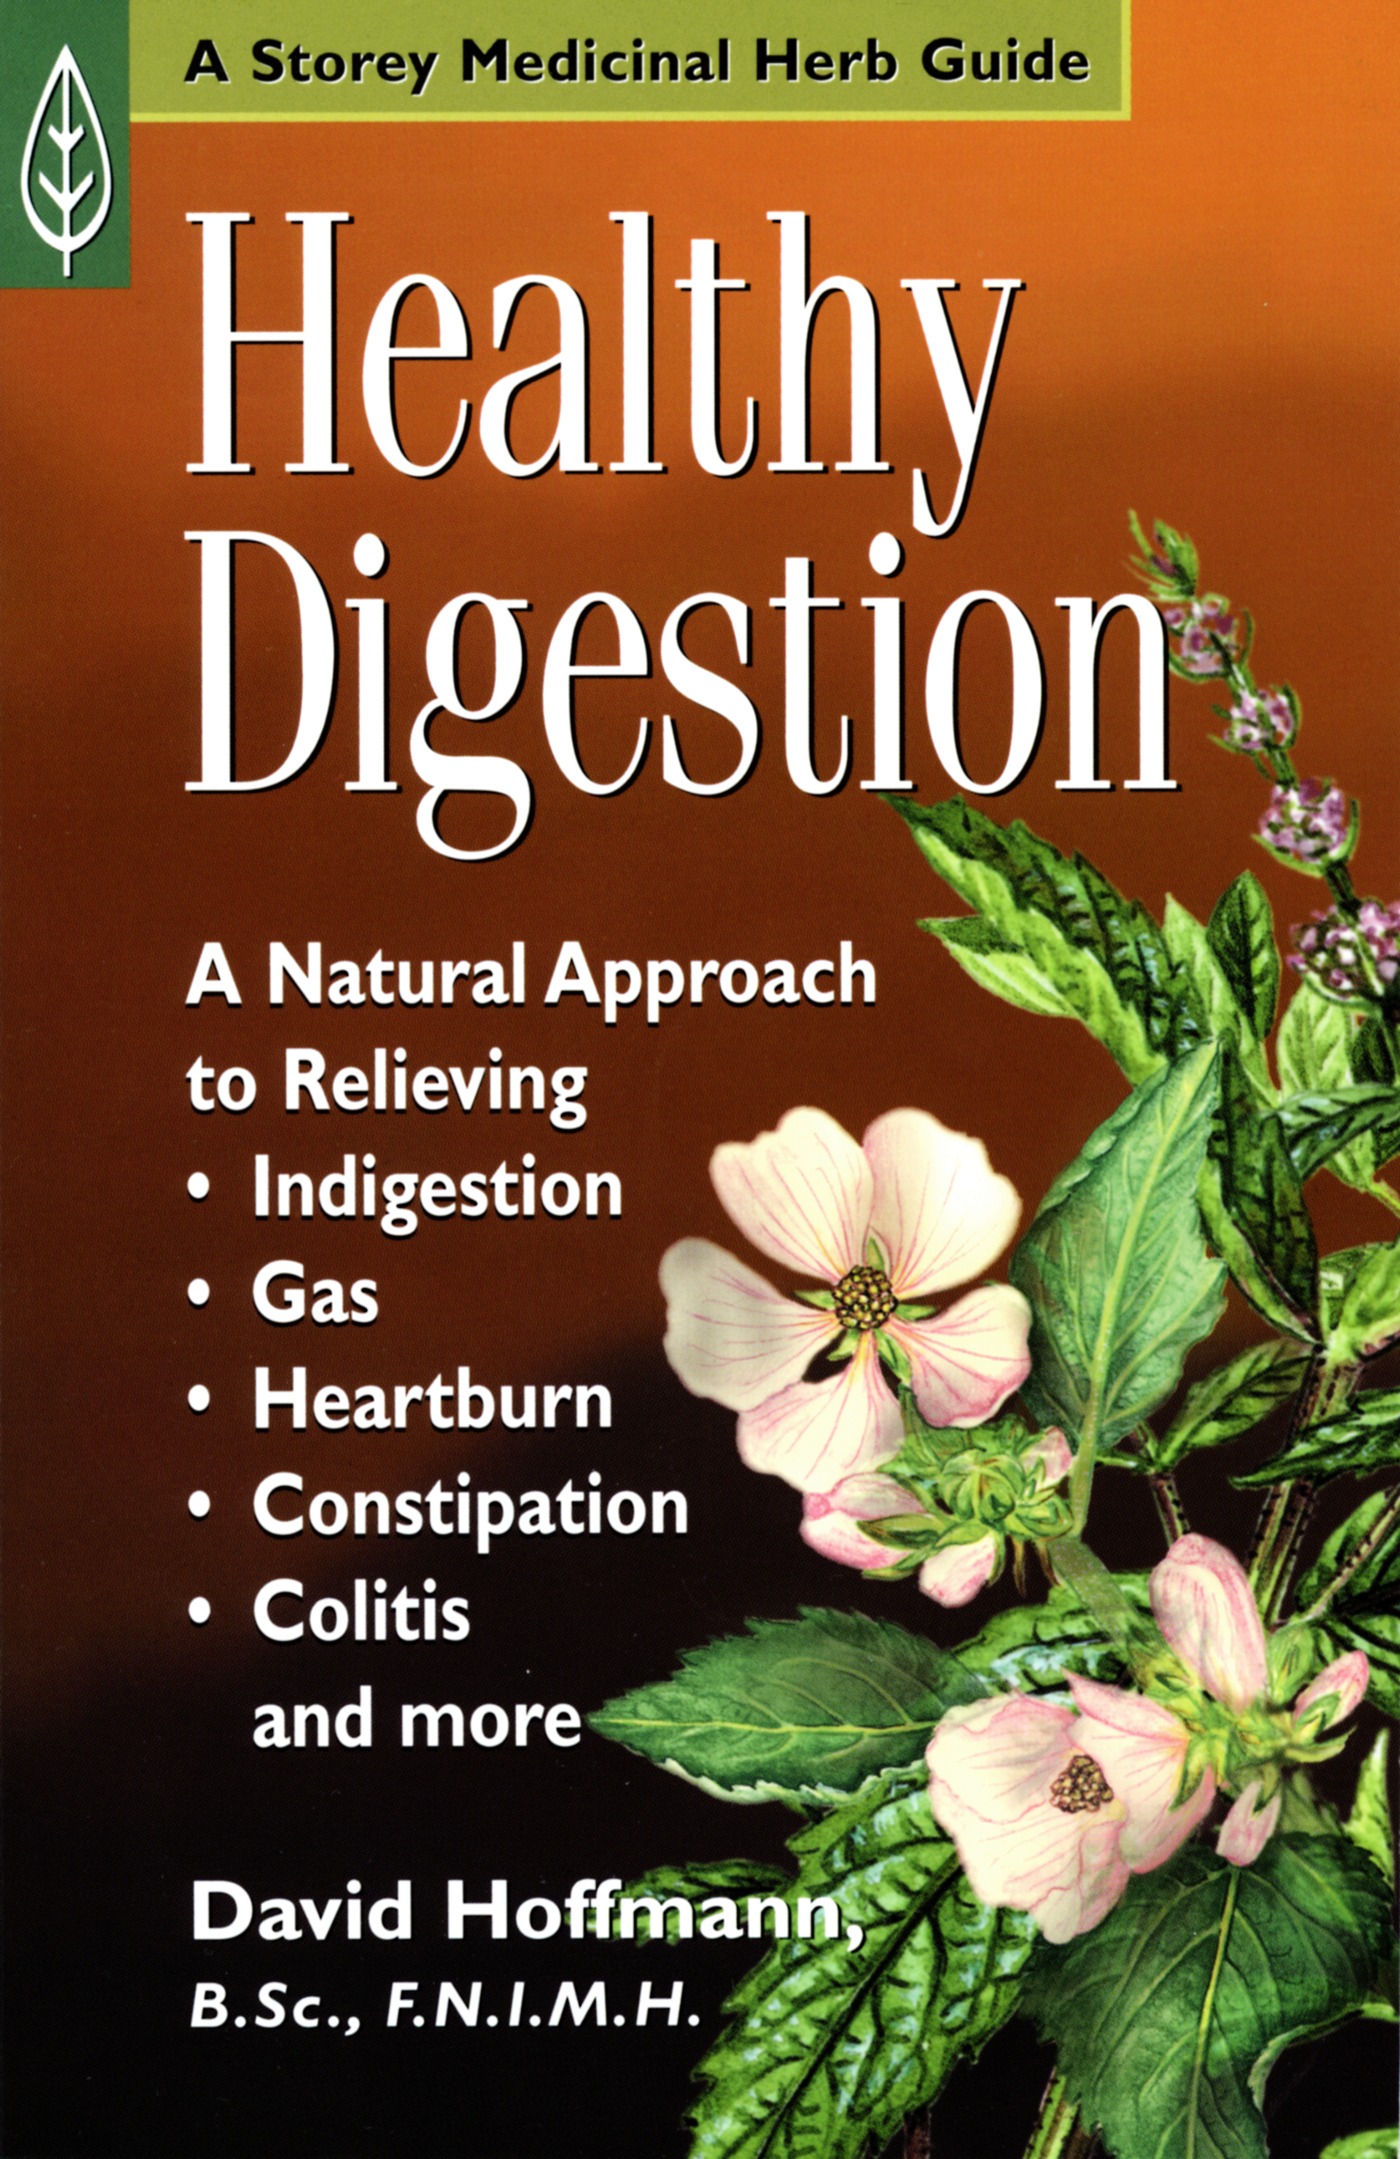 Healthy Digestion A Natural Approach to Relieving Indigestion, Gas, Heartburn, Constipation, Colitis, and More - David Hoffmann